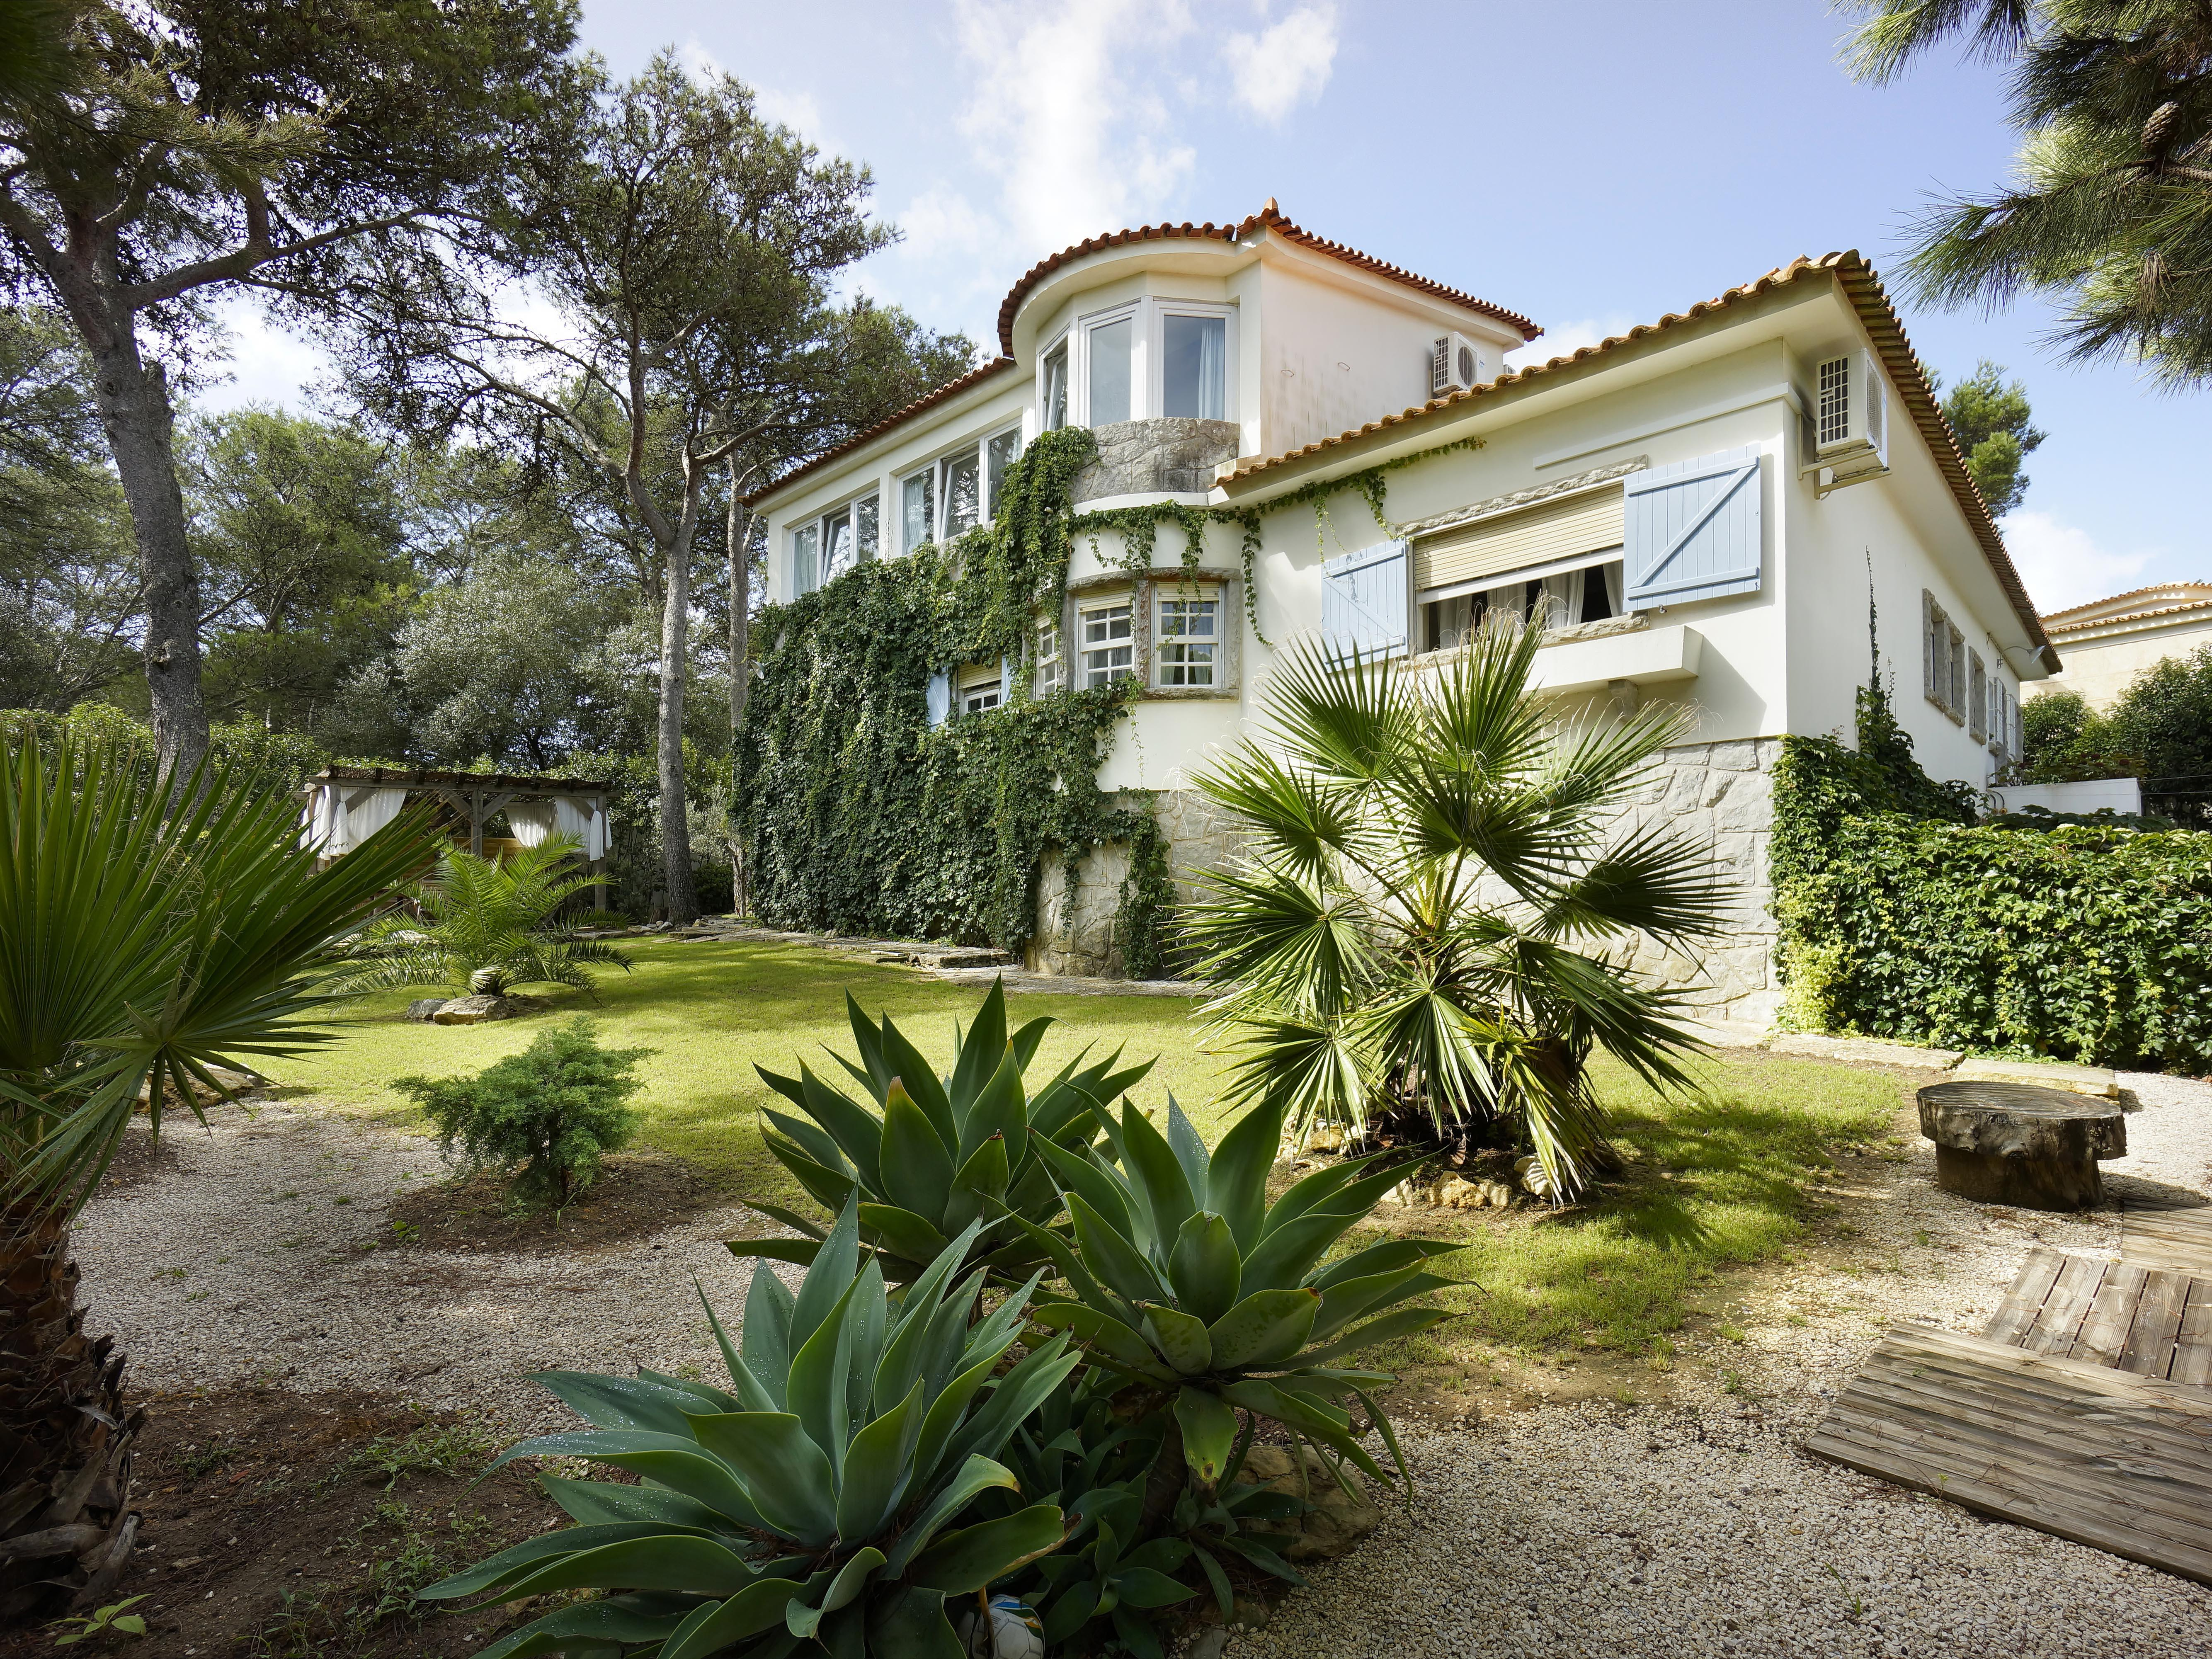 独户住宅 为 销售 在 House, 6 bedrooms, for Sale Cascais, 葡京 2750-233 葡萄牙